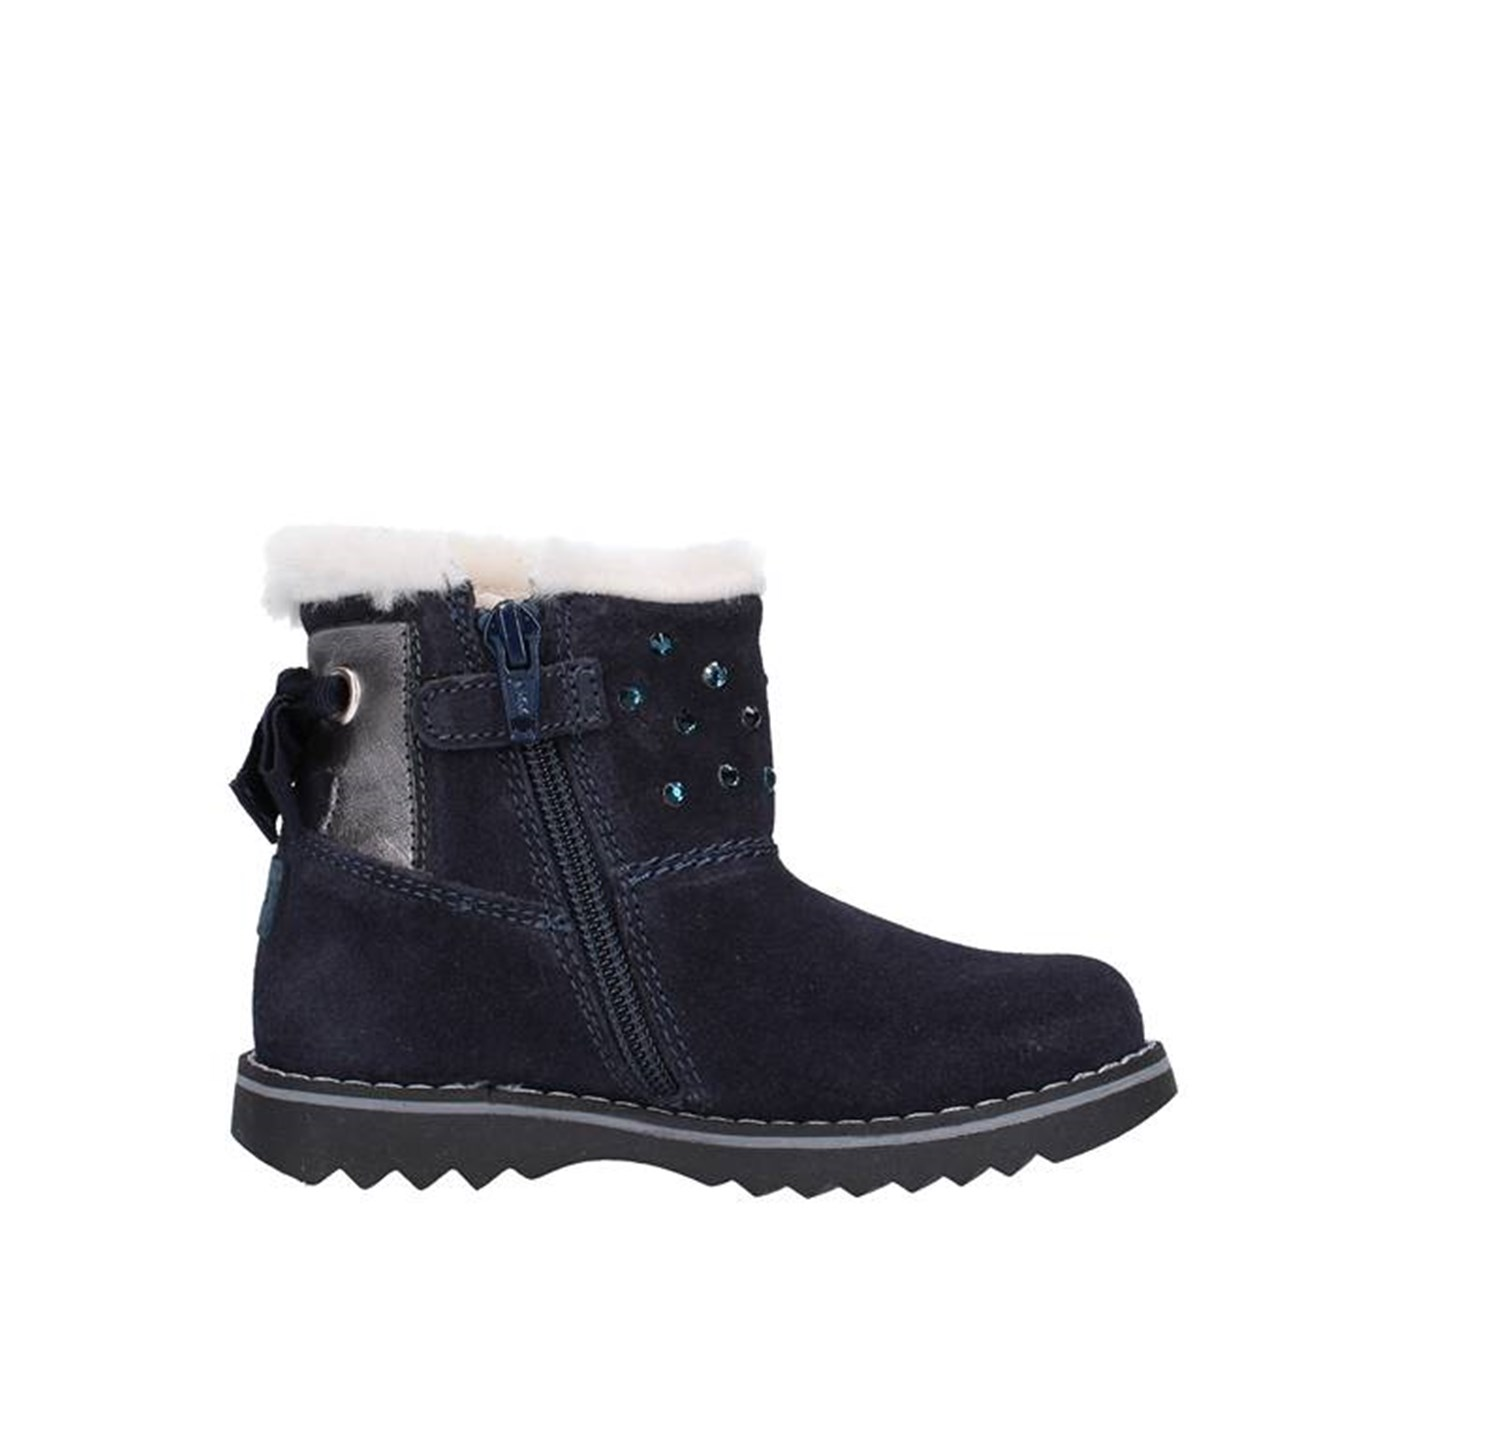 Balducci Shoes Child boots BLUE MATR1706